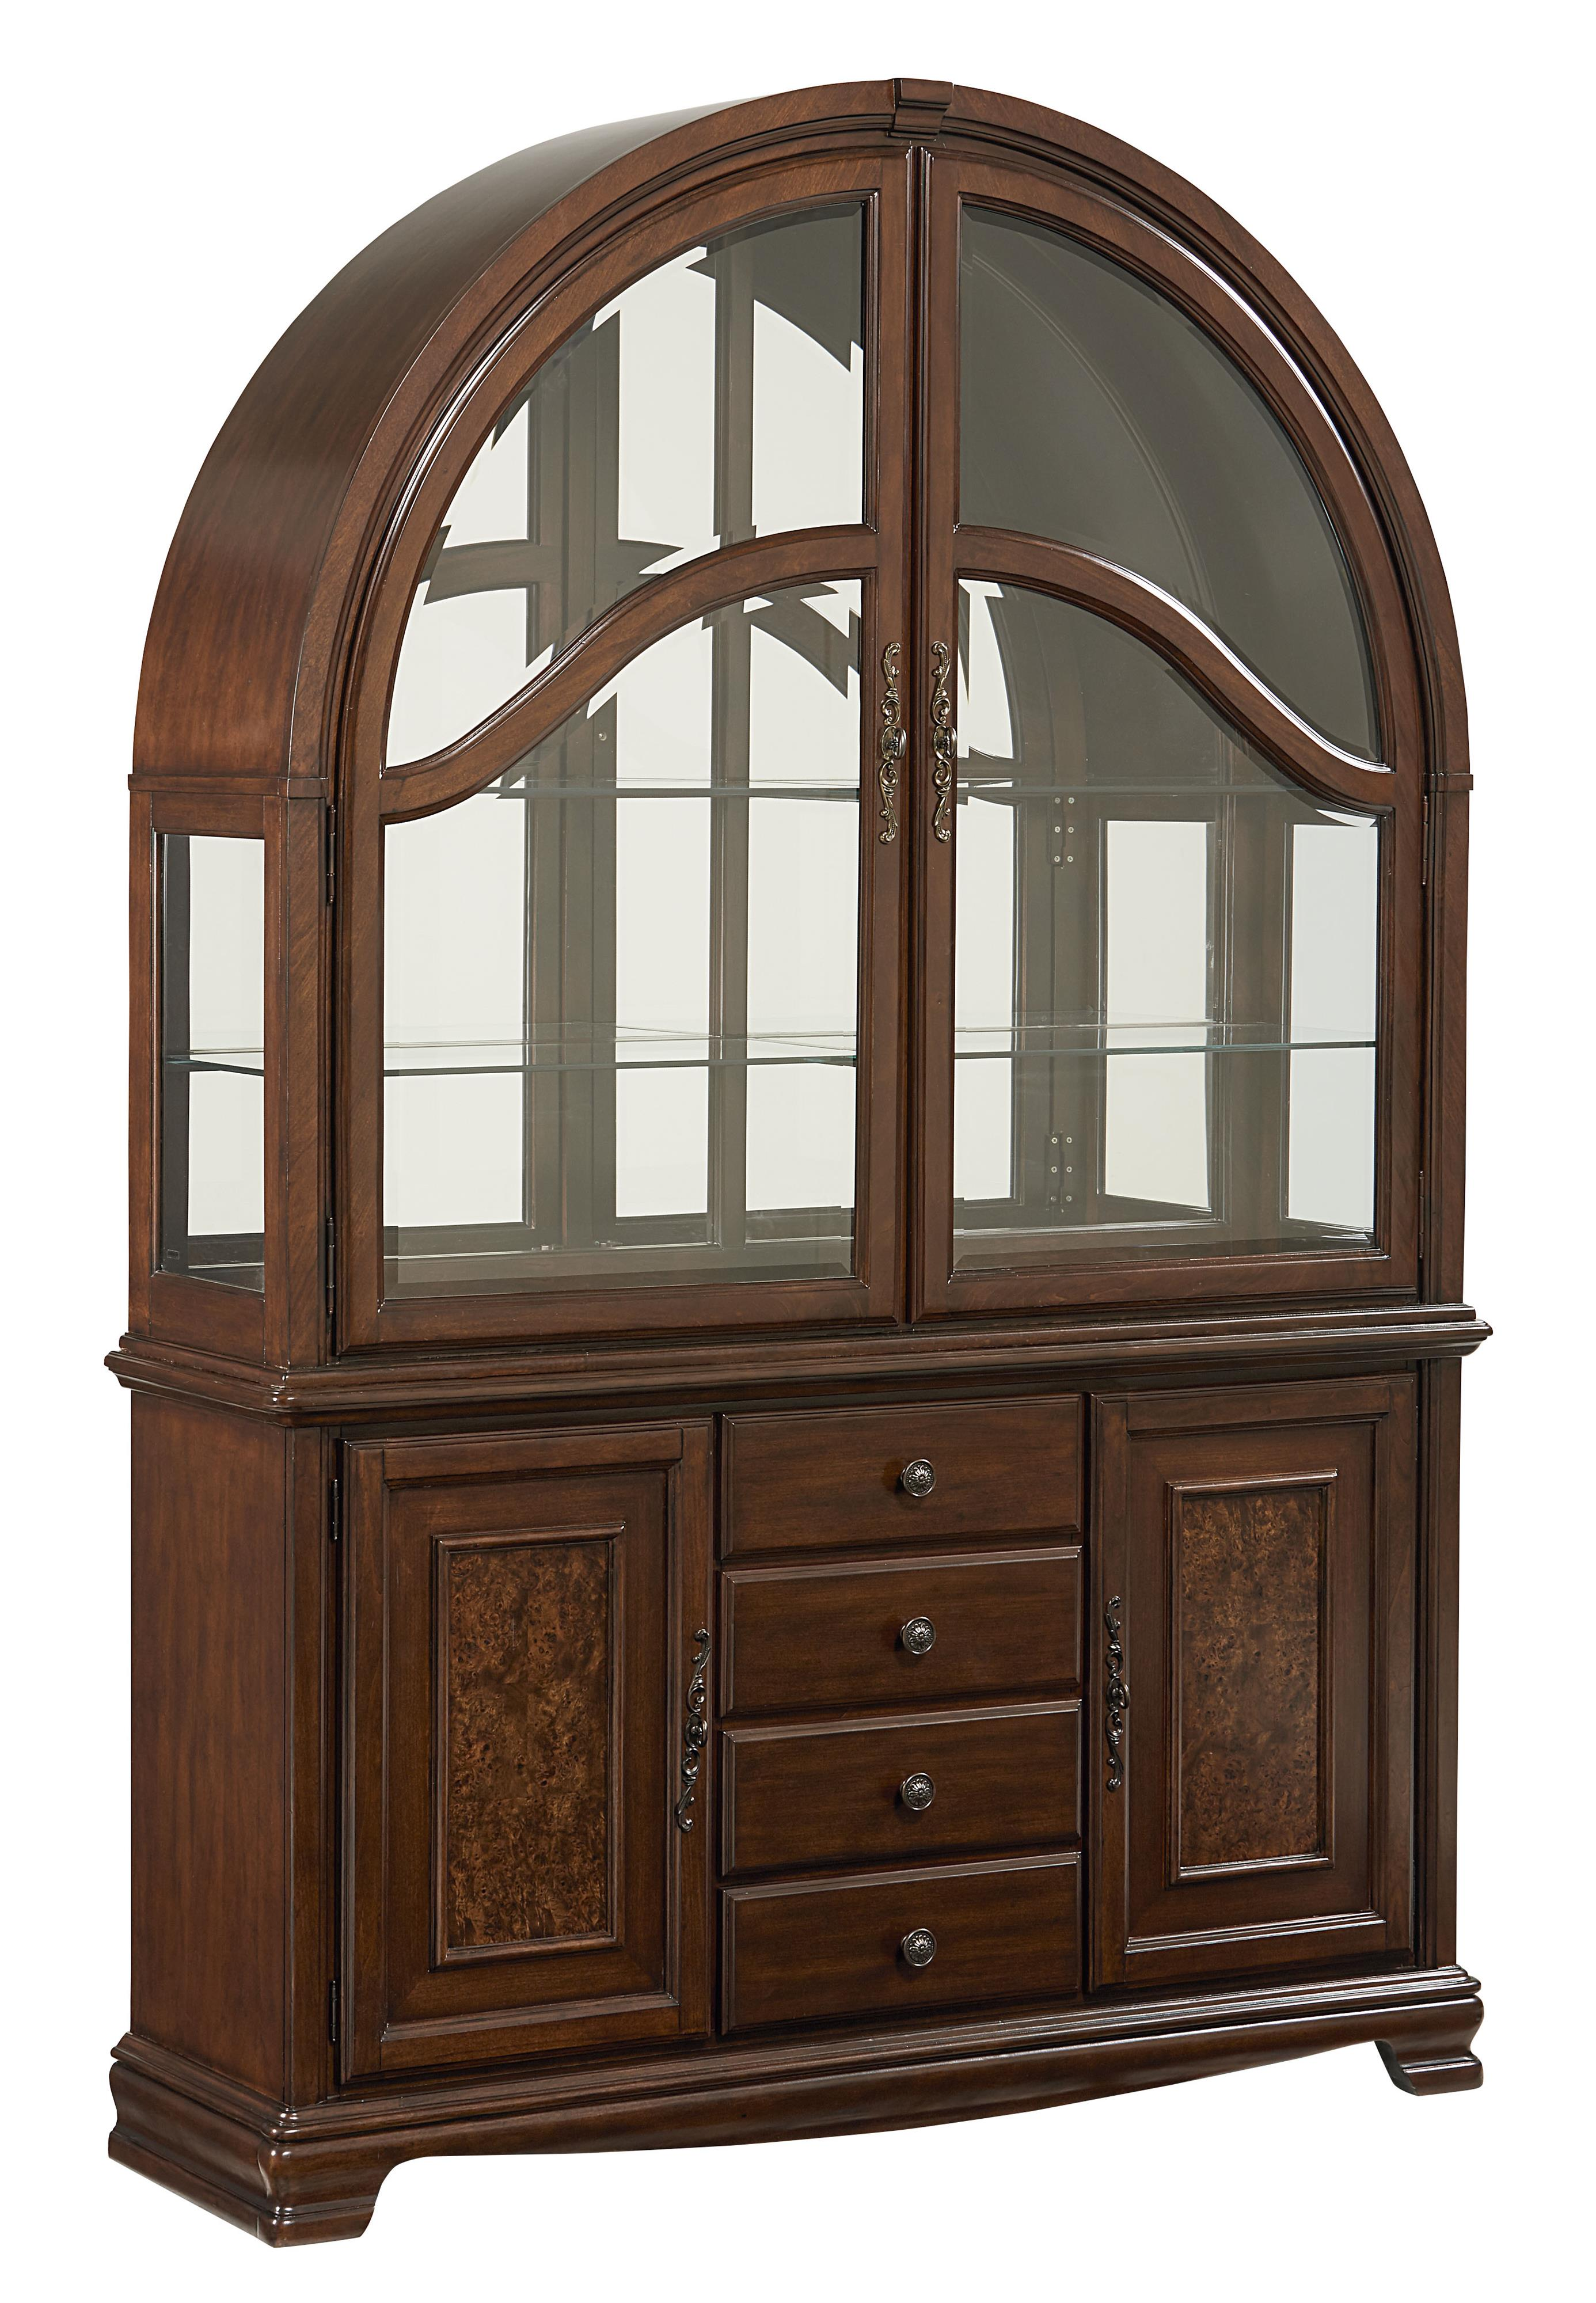 Standard Furniture Carrington Dining Buffet and Hutch - Item Number: 17028+29